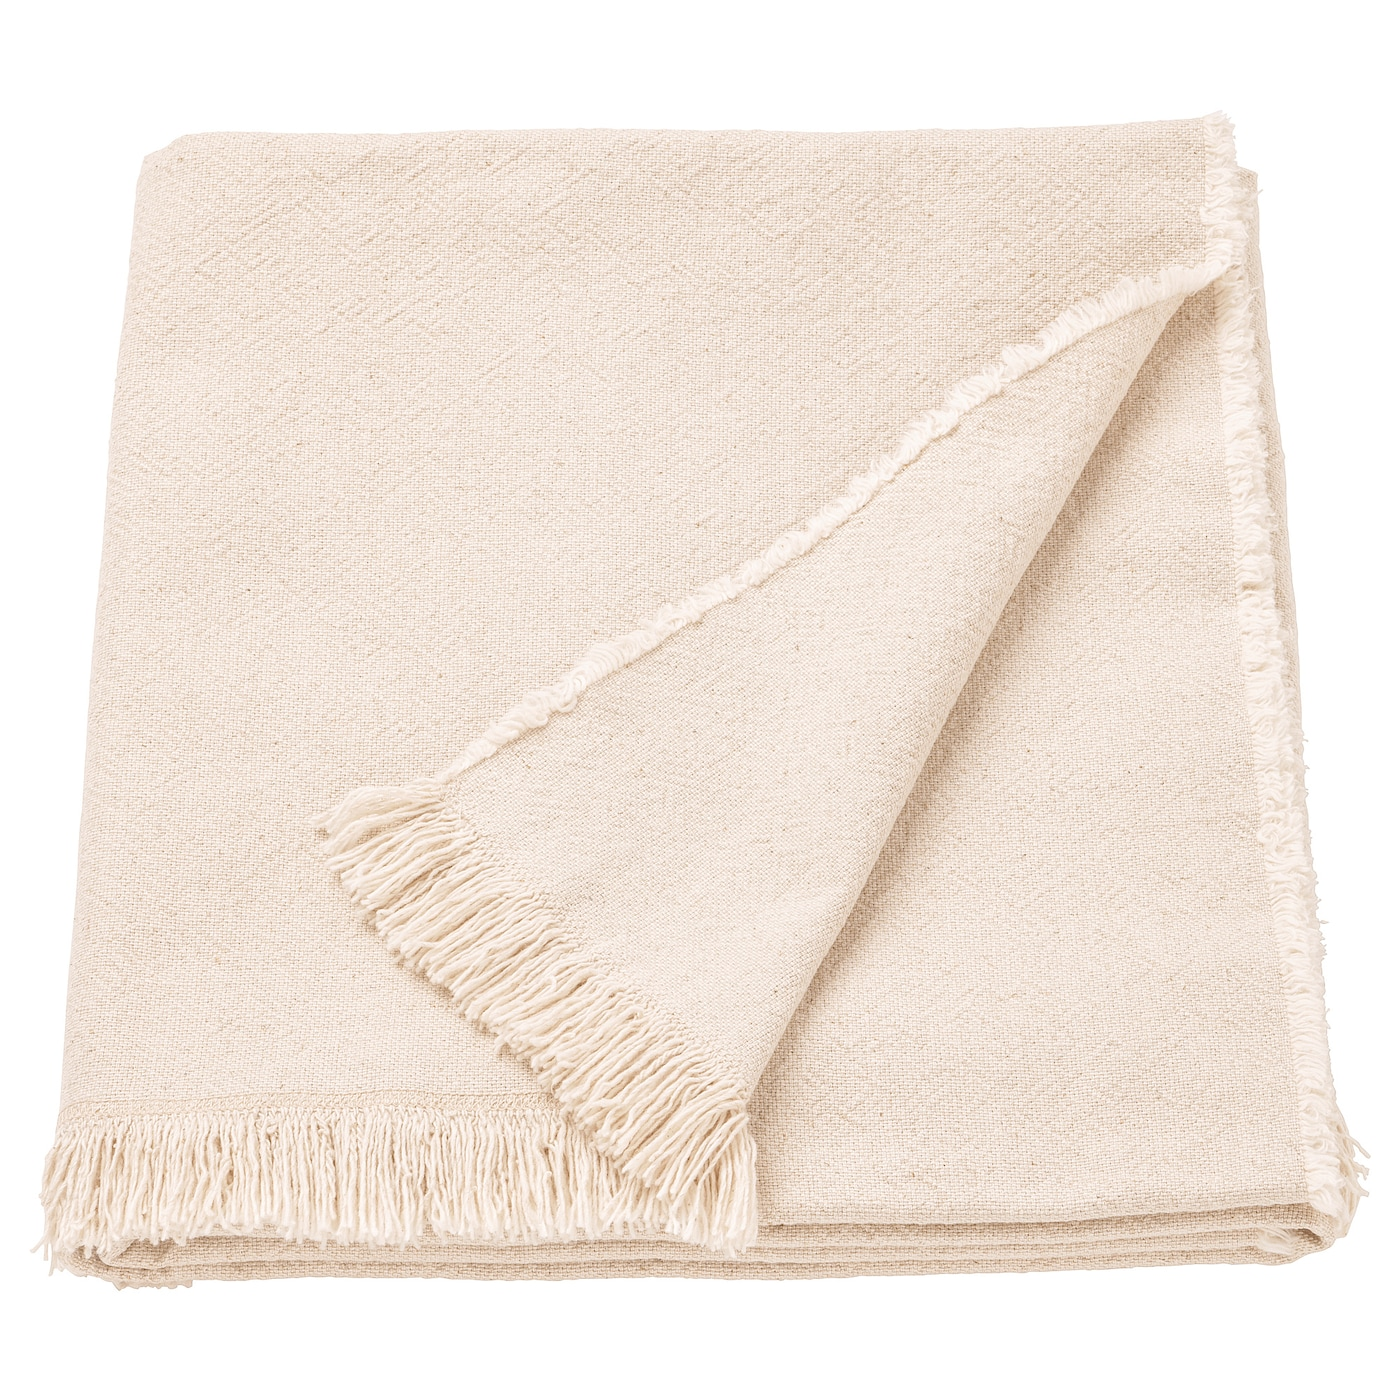 IKEA JOFRID throw Cotton is a soft and easy-care natural material that you can machine wash.